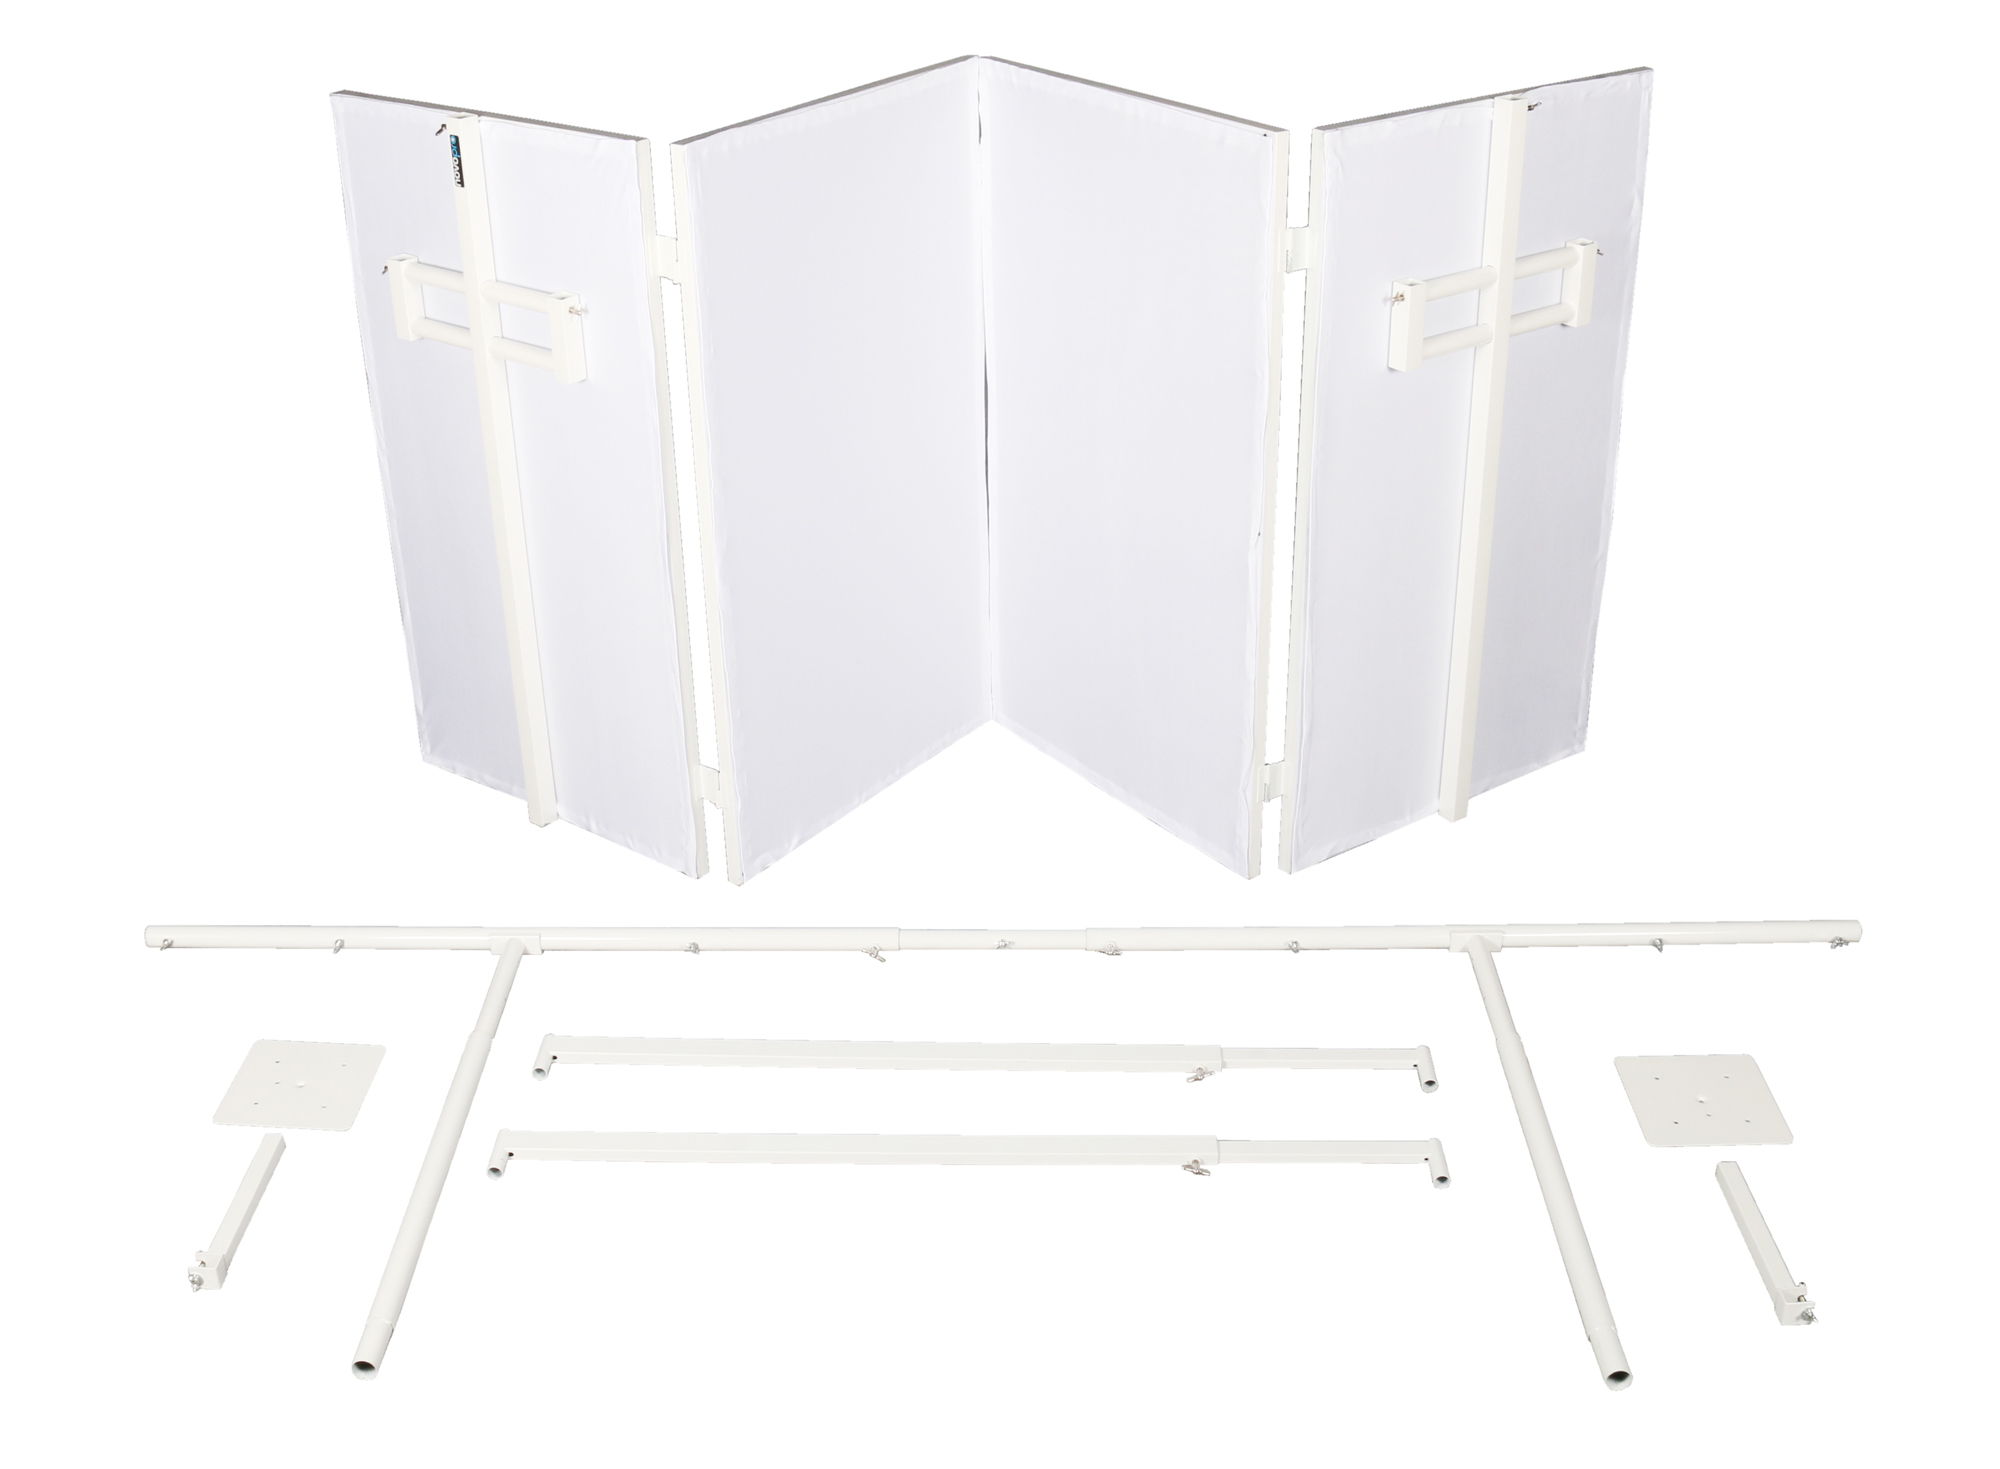 NOVOPRO SDX V2 Mobile DJ Booth White Folding DJ Booth with Table